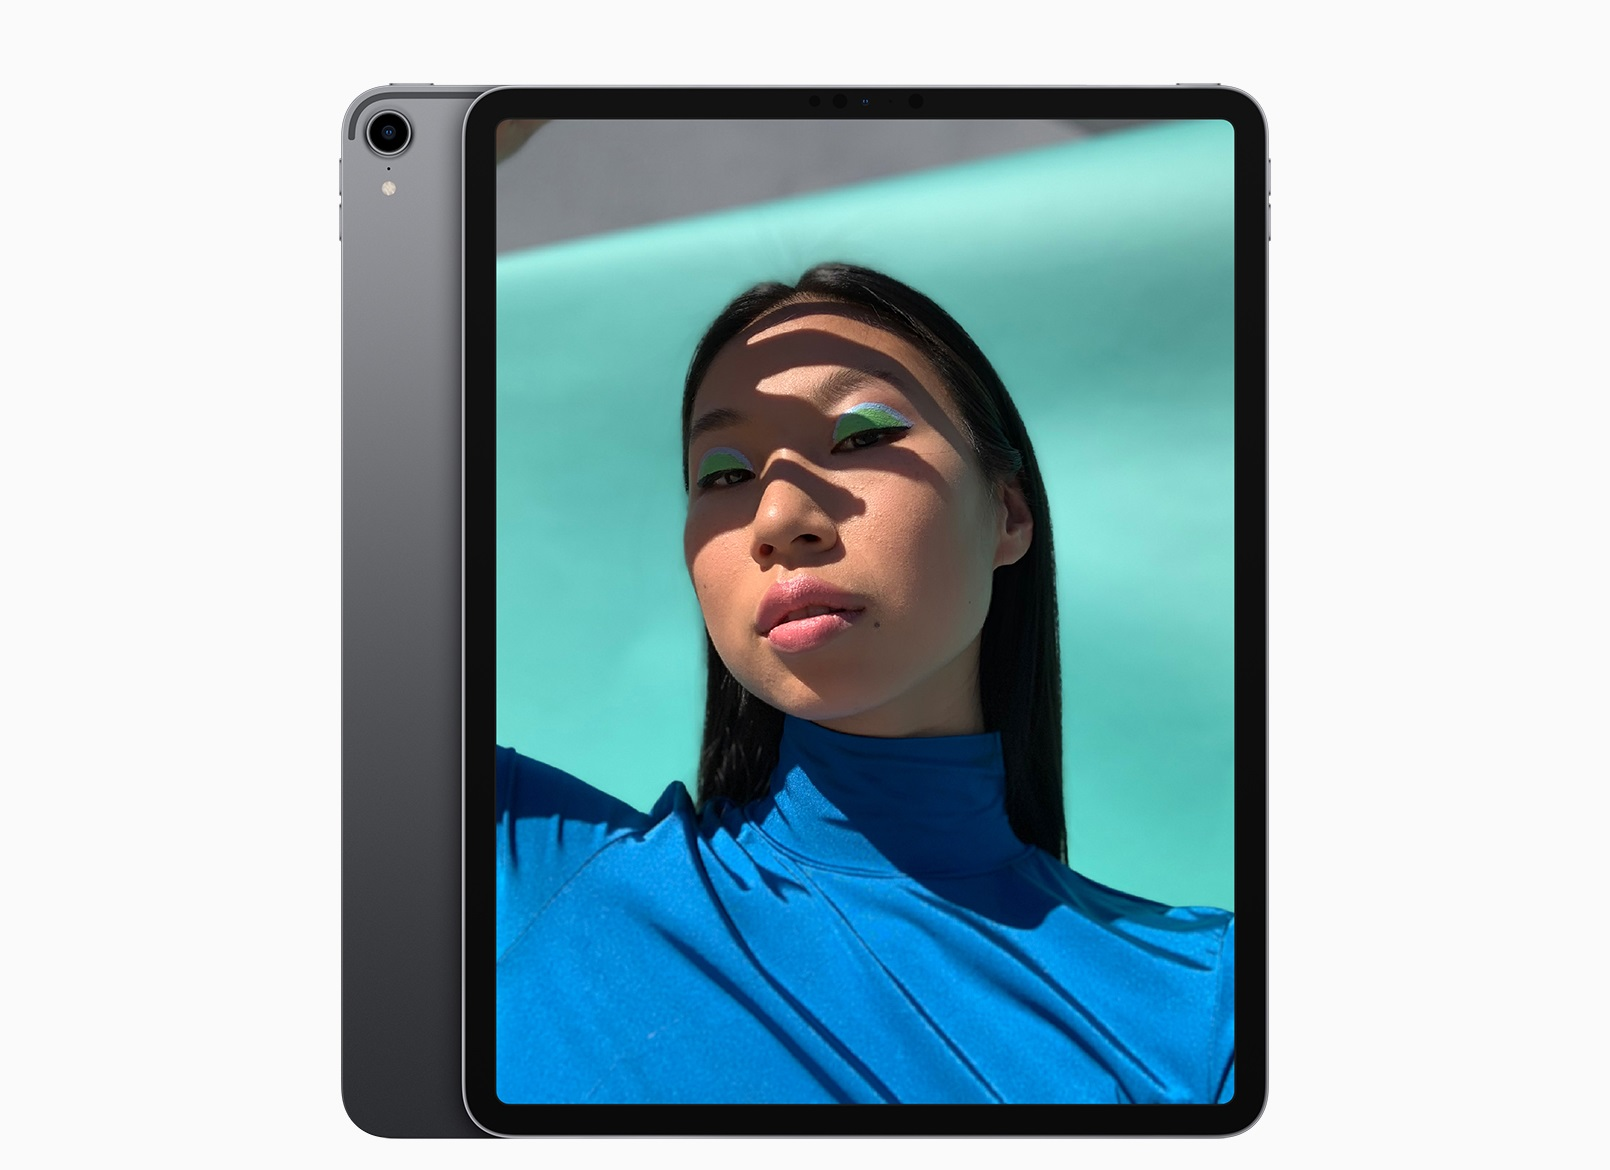 Apple iPad Pro 11 (2018) 64GB Wi-Fi